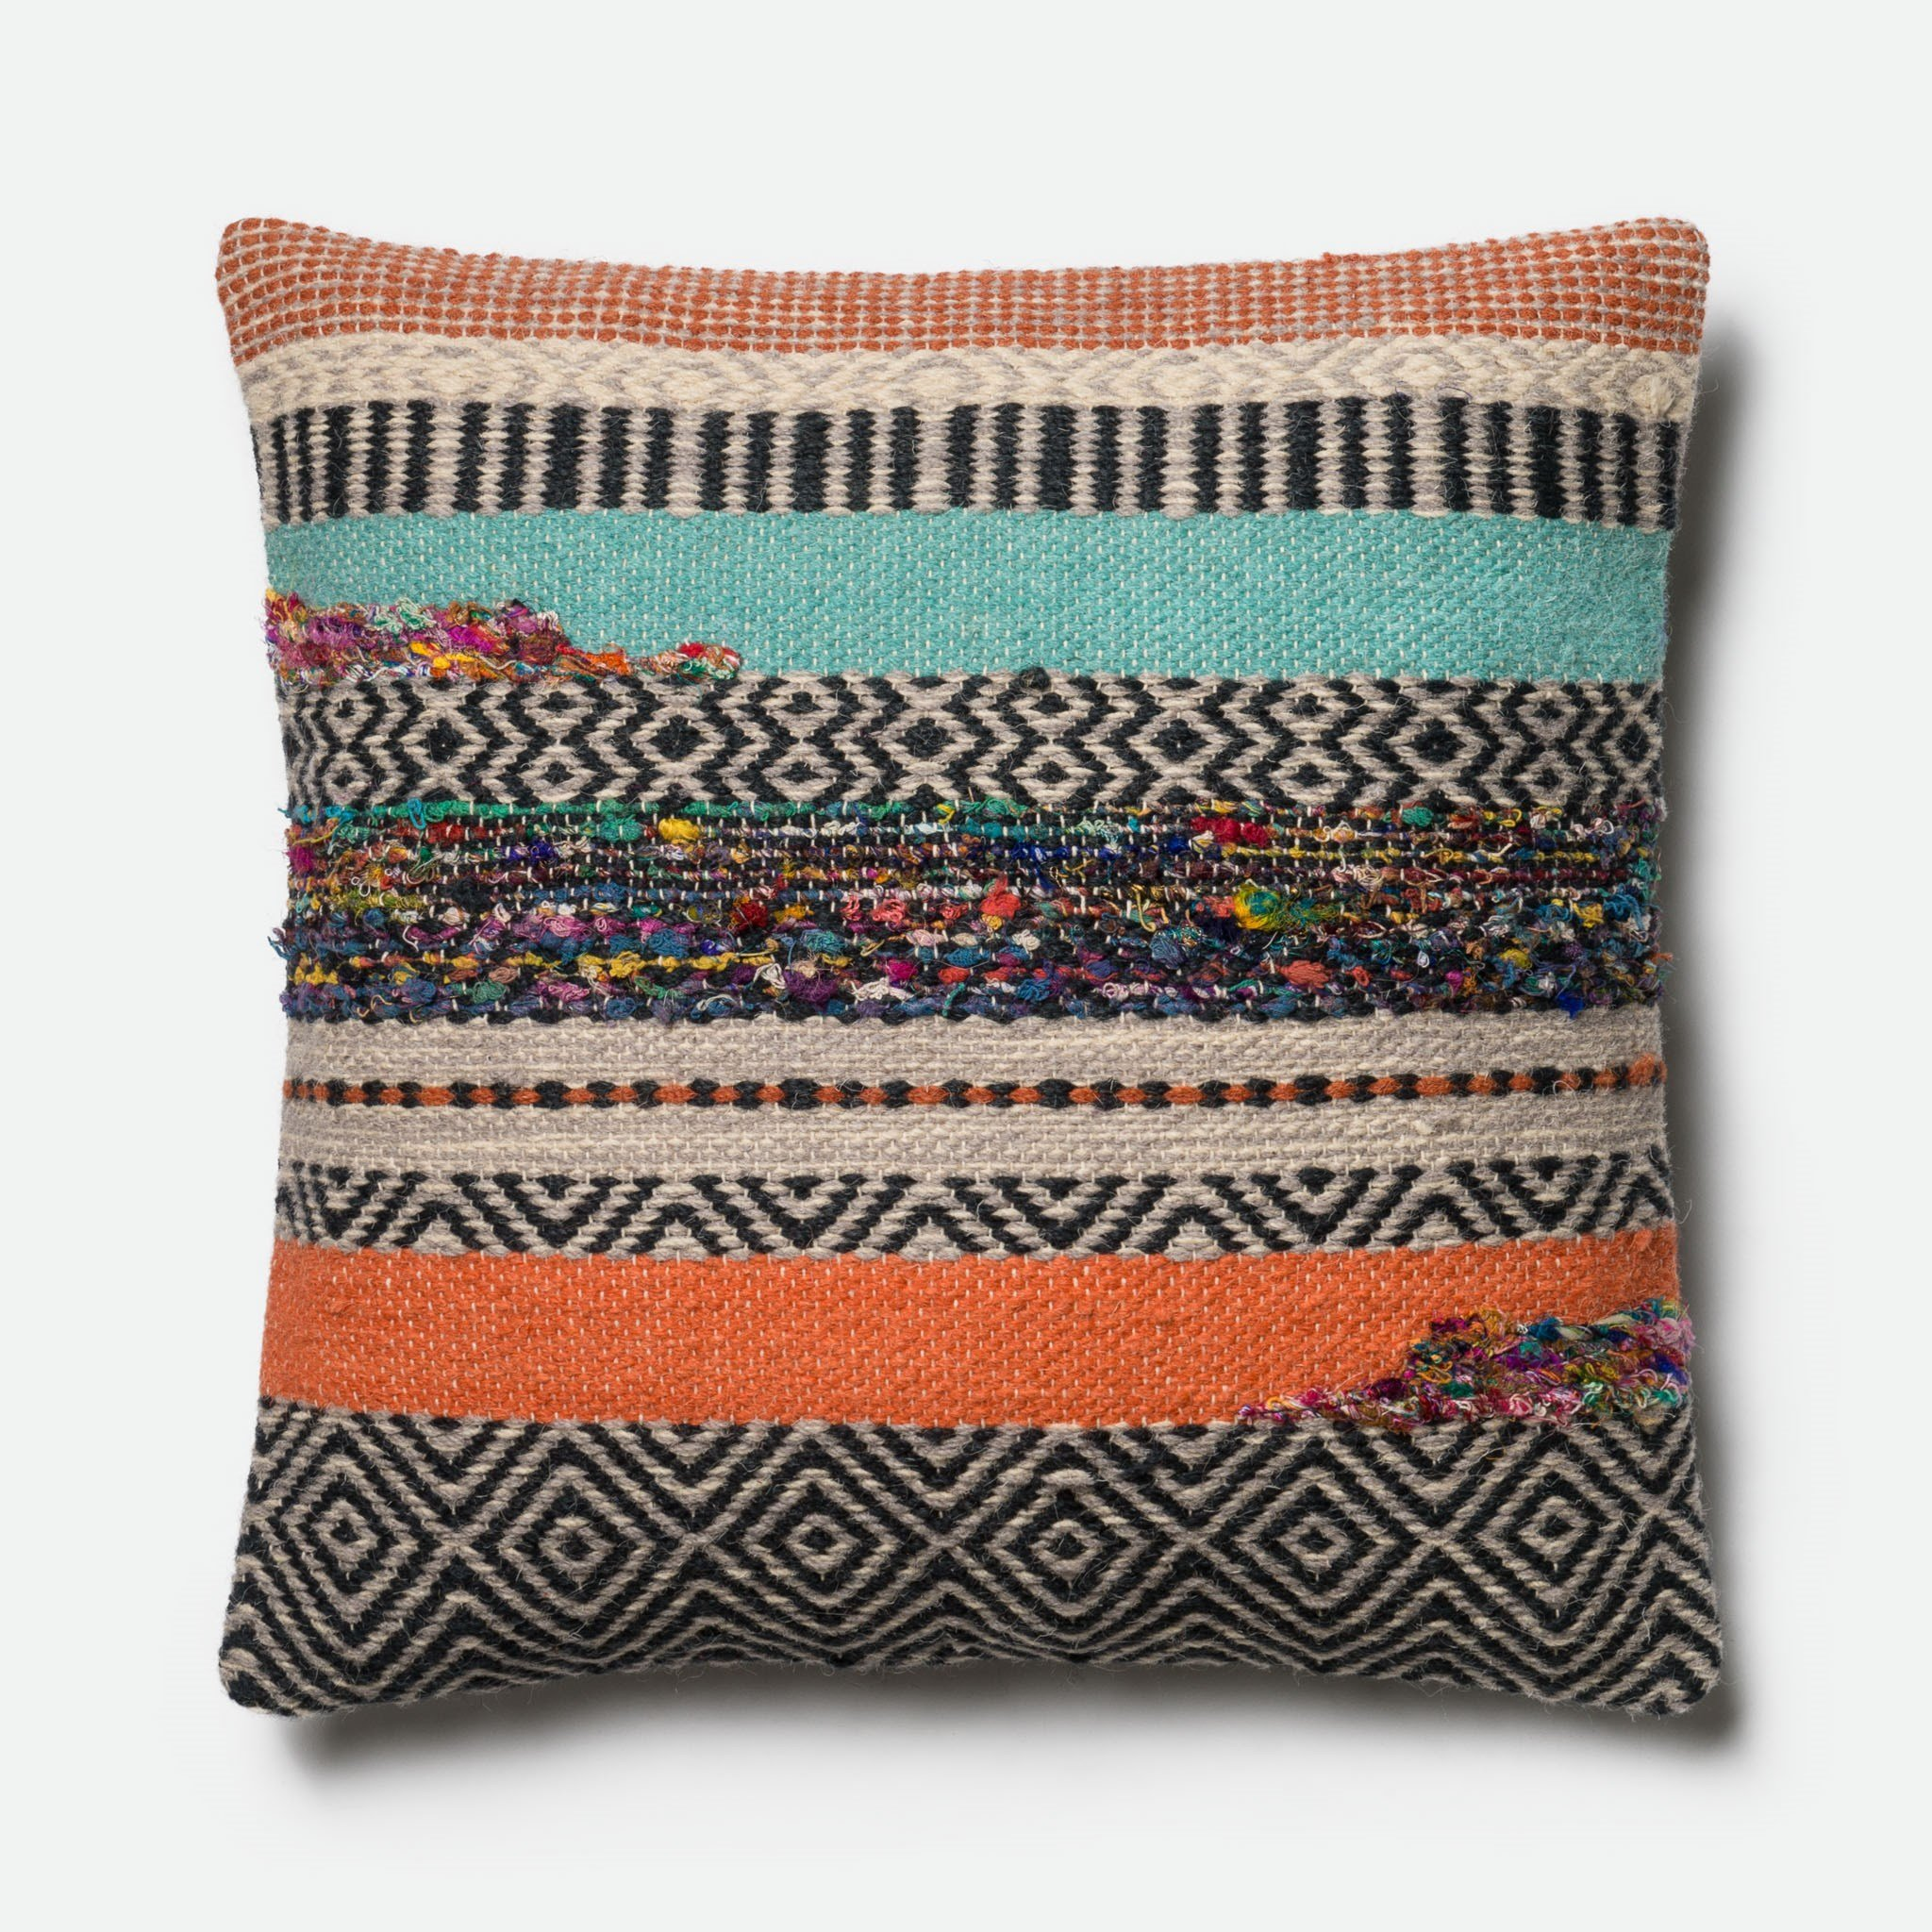 Loloi Pillow, Down Filled - Multi Pillow Cover, 22'' x 22'' by Loloi